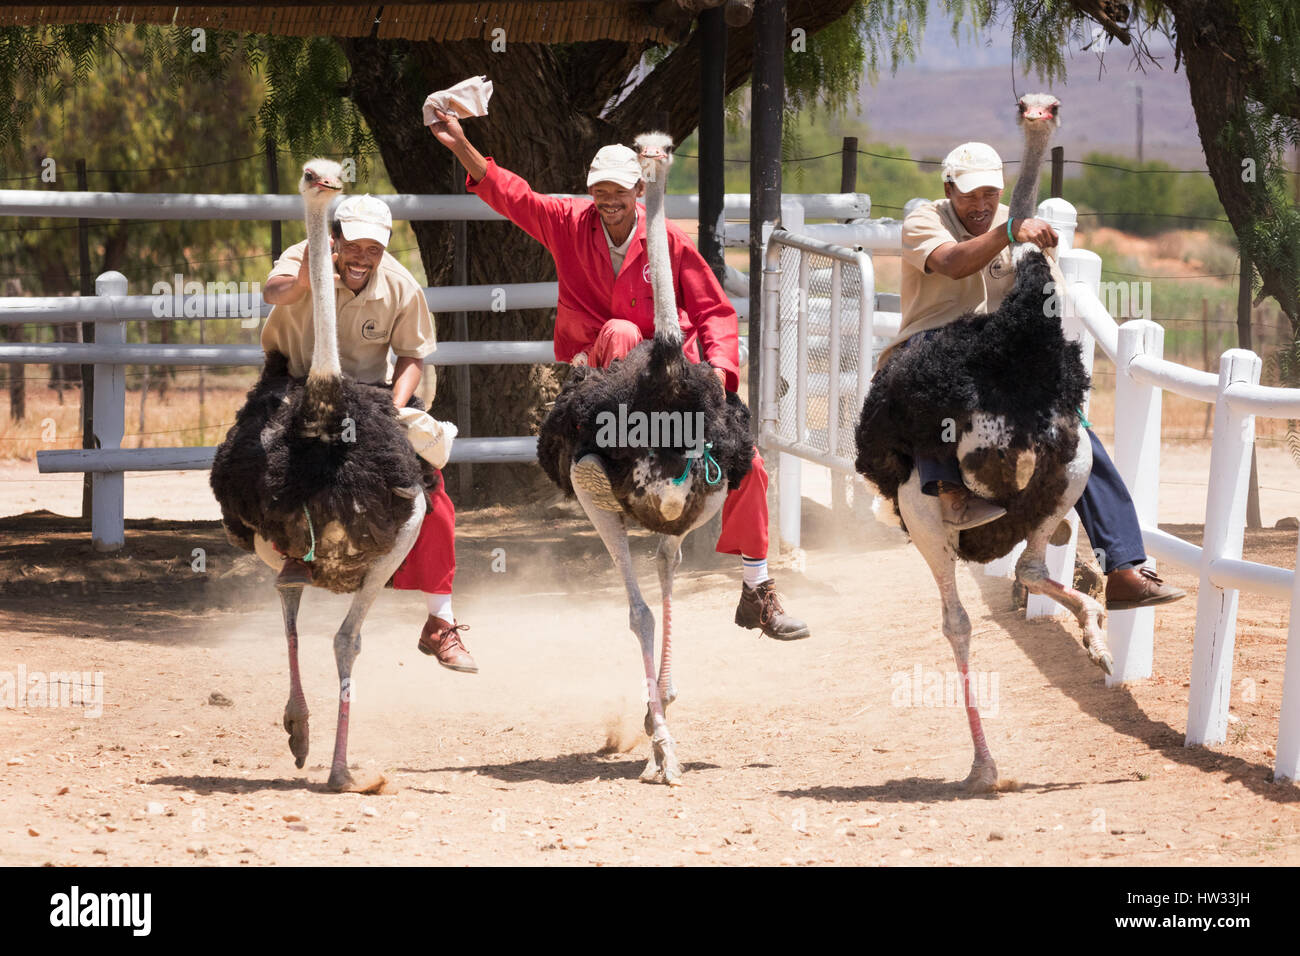 ostrich-racing-an-example-of-south-africa-tourism-highgate-ostrich-HW33JH.jpg